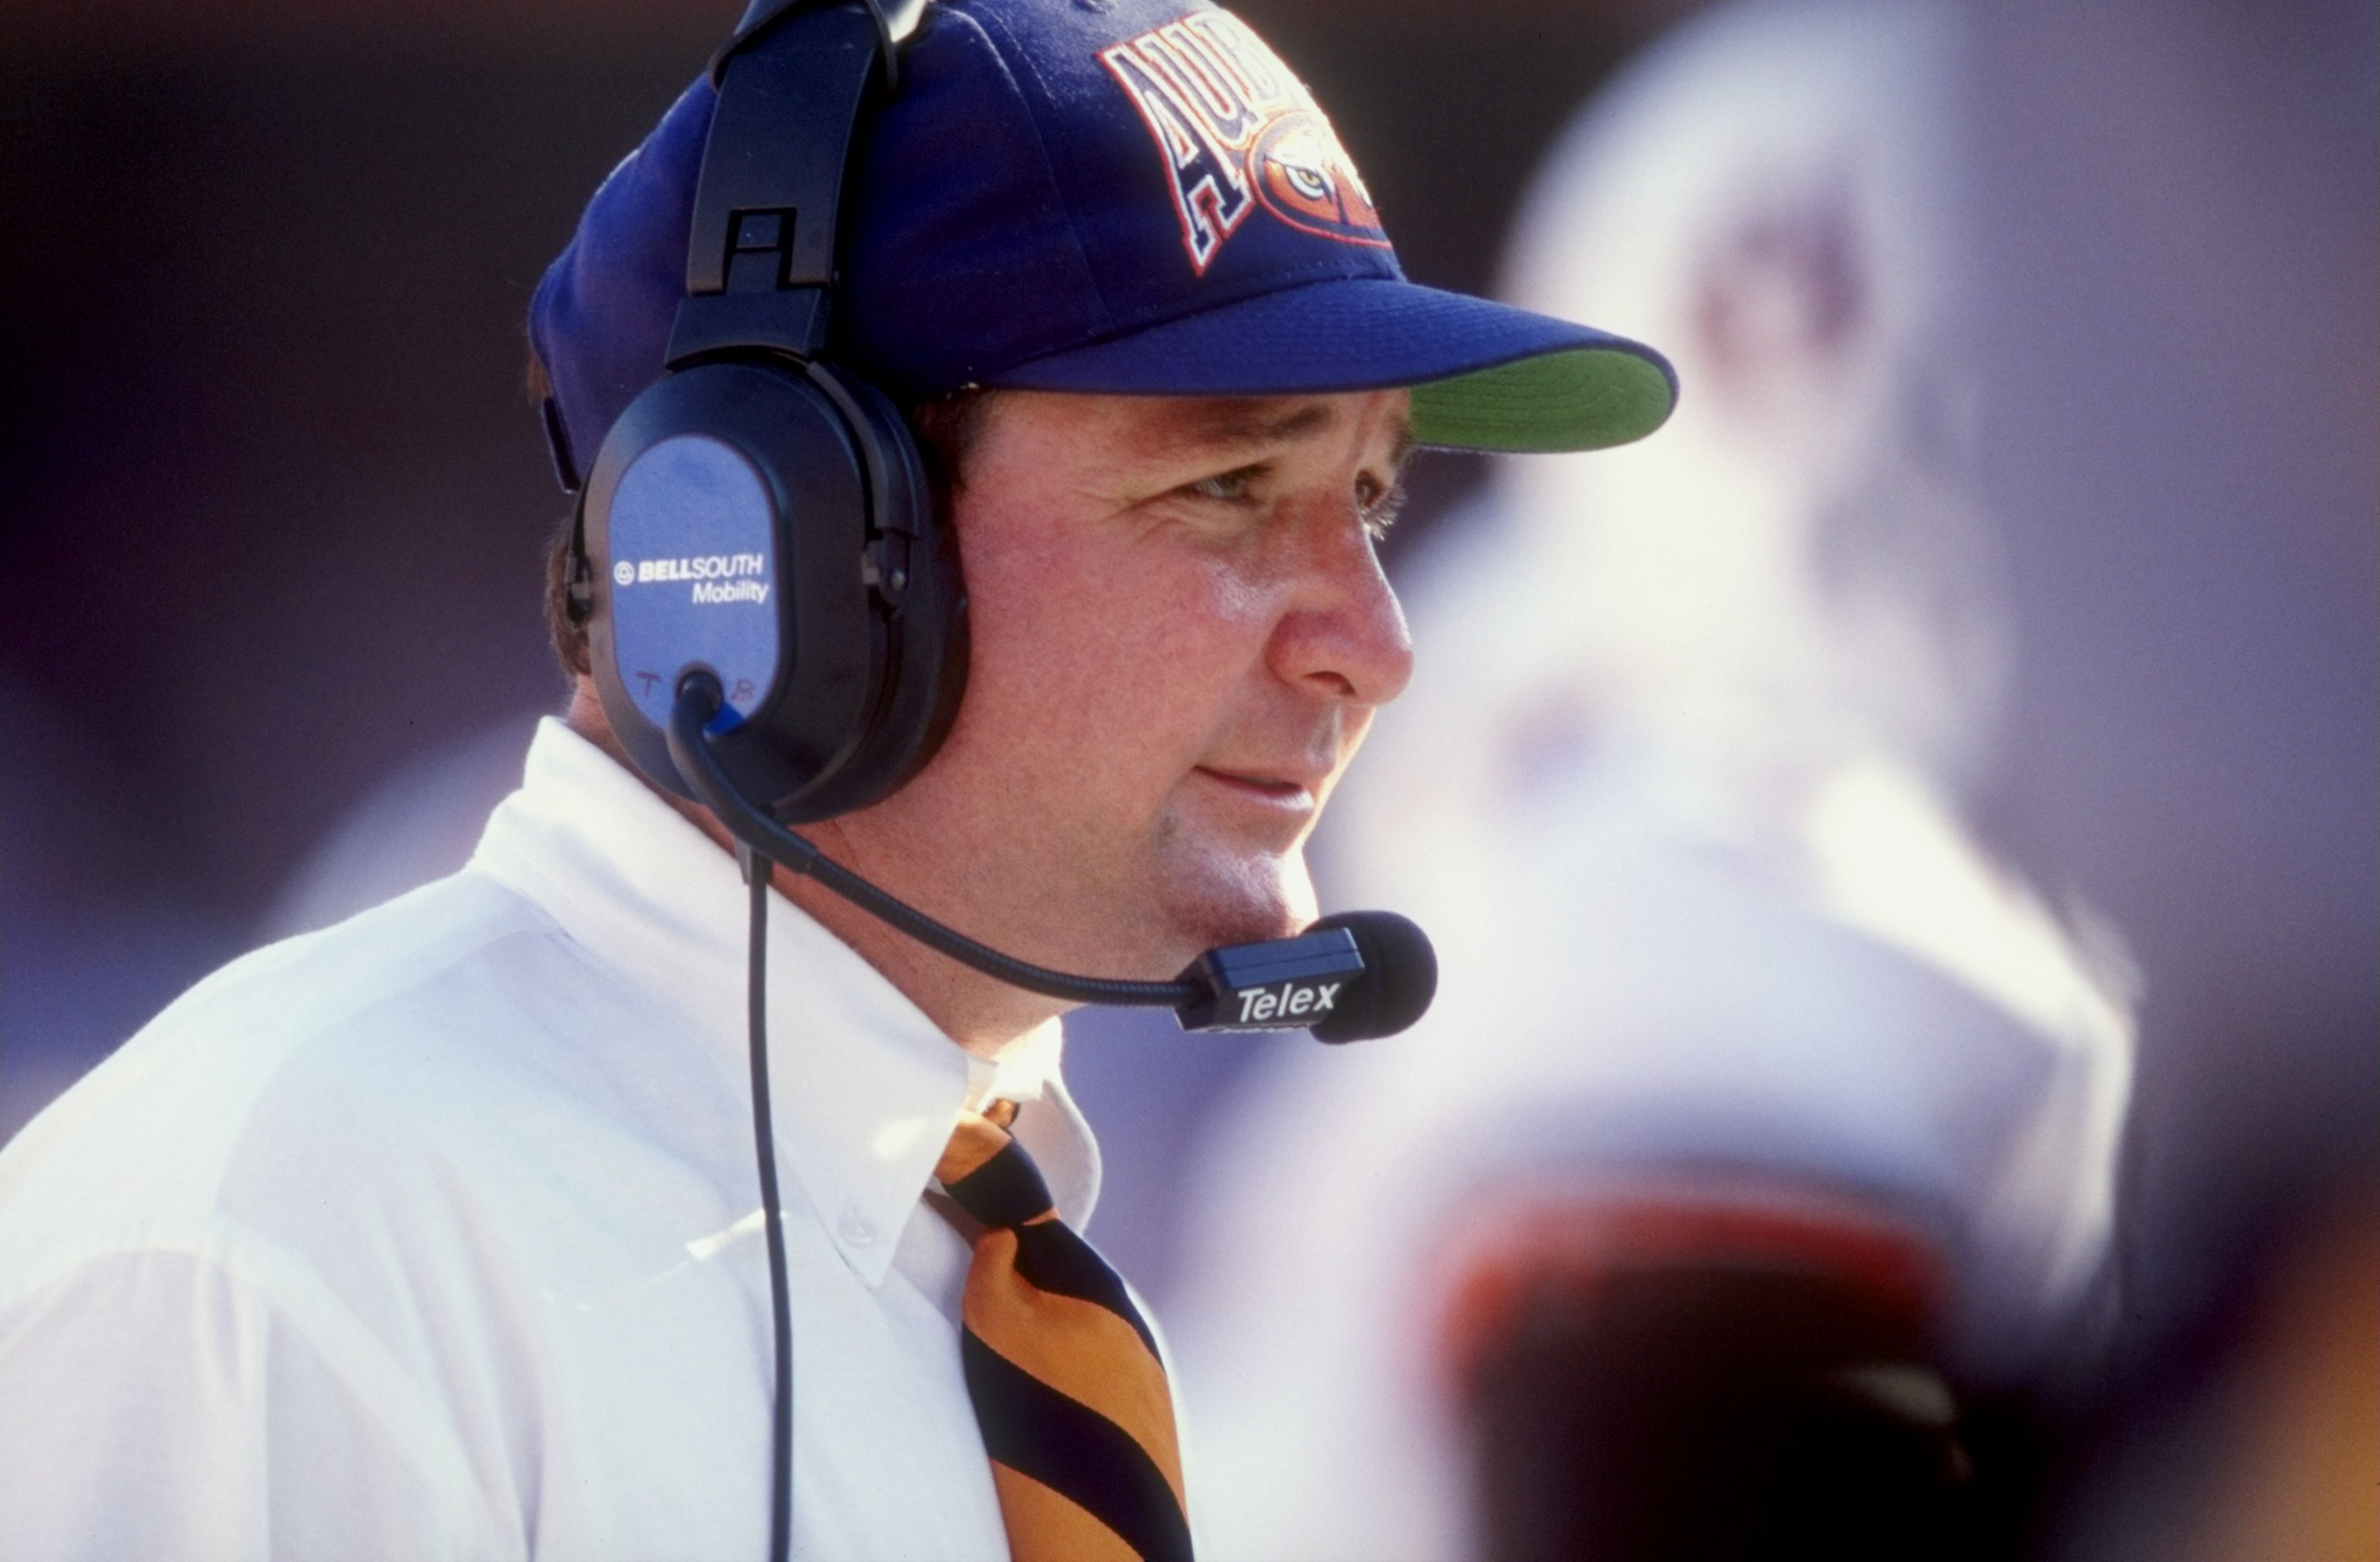 17 Oct 1998:  Head coach Terry Bowden of the Auburn Tigers looks on during a game against the Florida Gators at the Florida Field in Gainesville, Florida. The Gators defeated the Tigers 24-3.